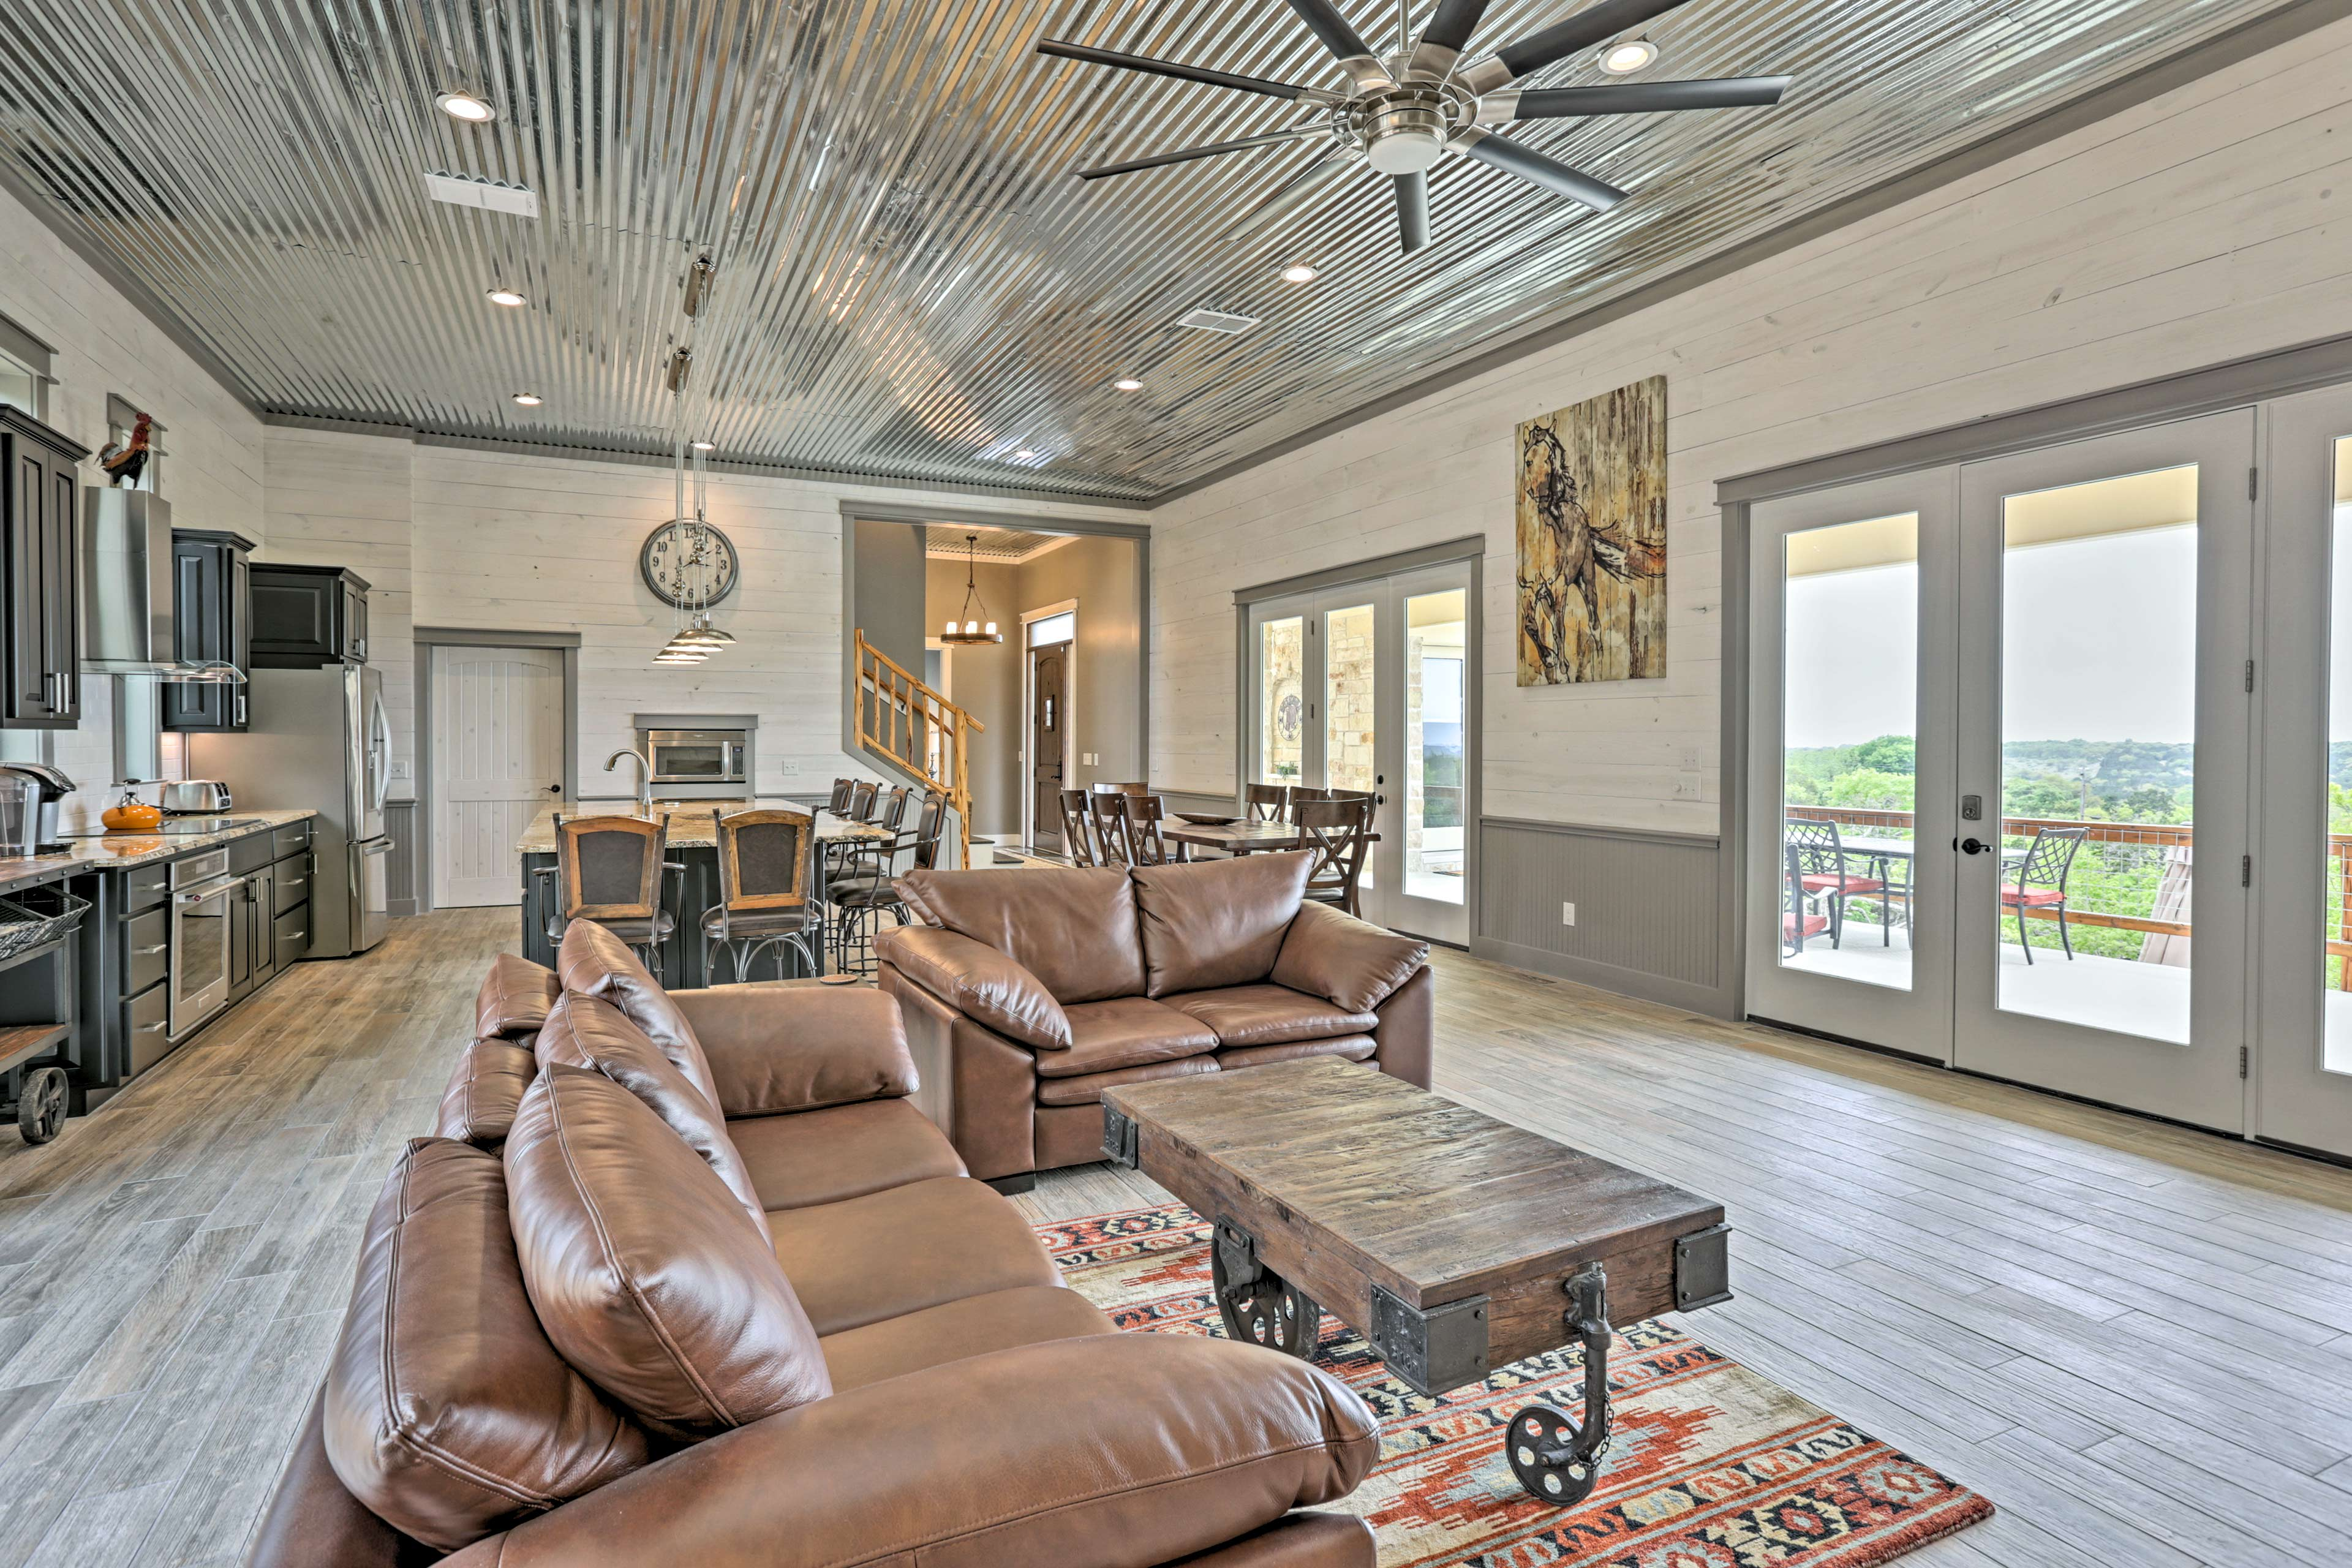 Scenic and secluded, this Wimberley house urges you to relax and recharge.